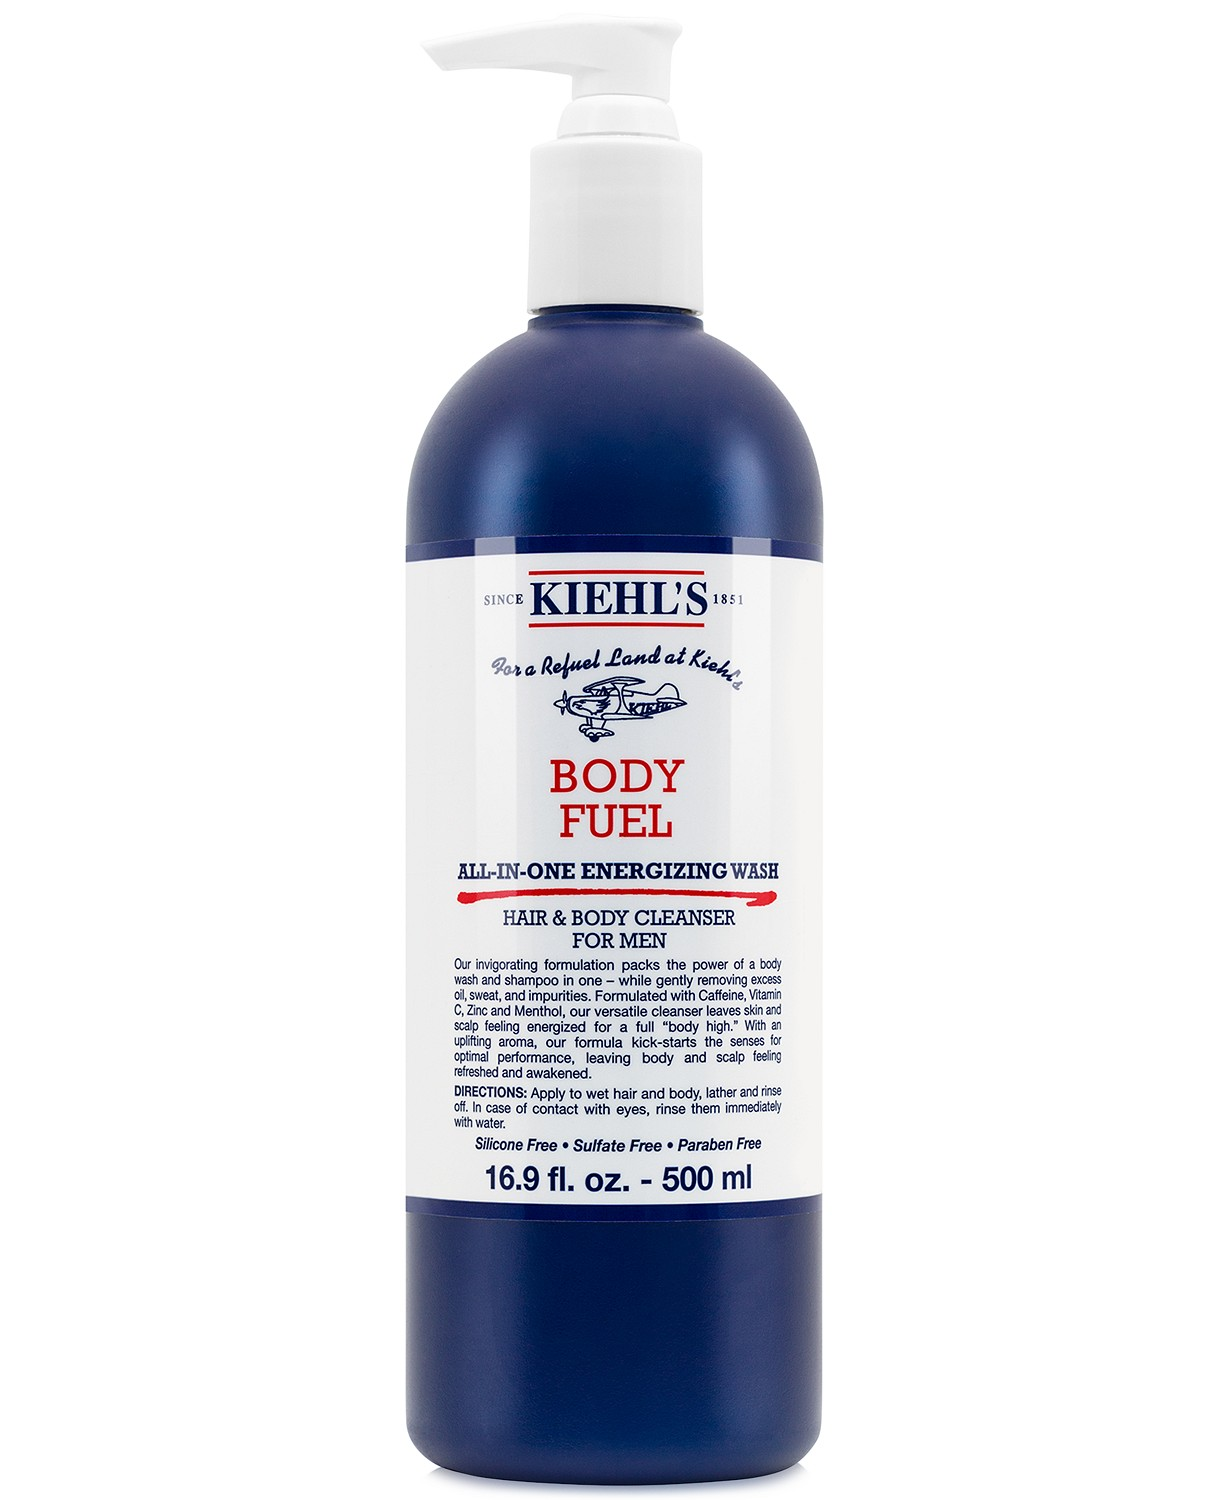 Kiehl's Since 1851 Body Fuel All-In-One Energizing Wash, 16.9-oz